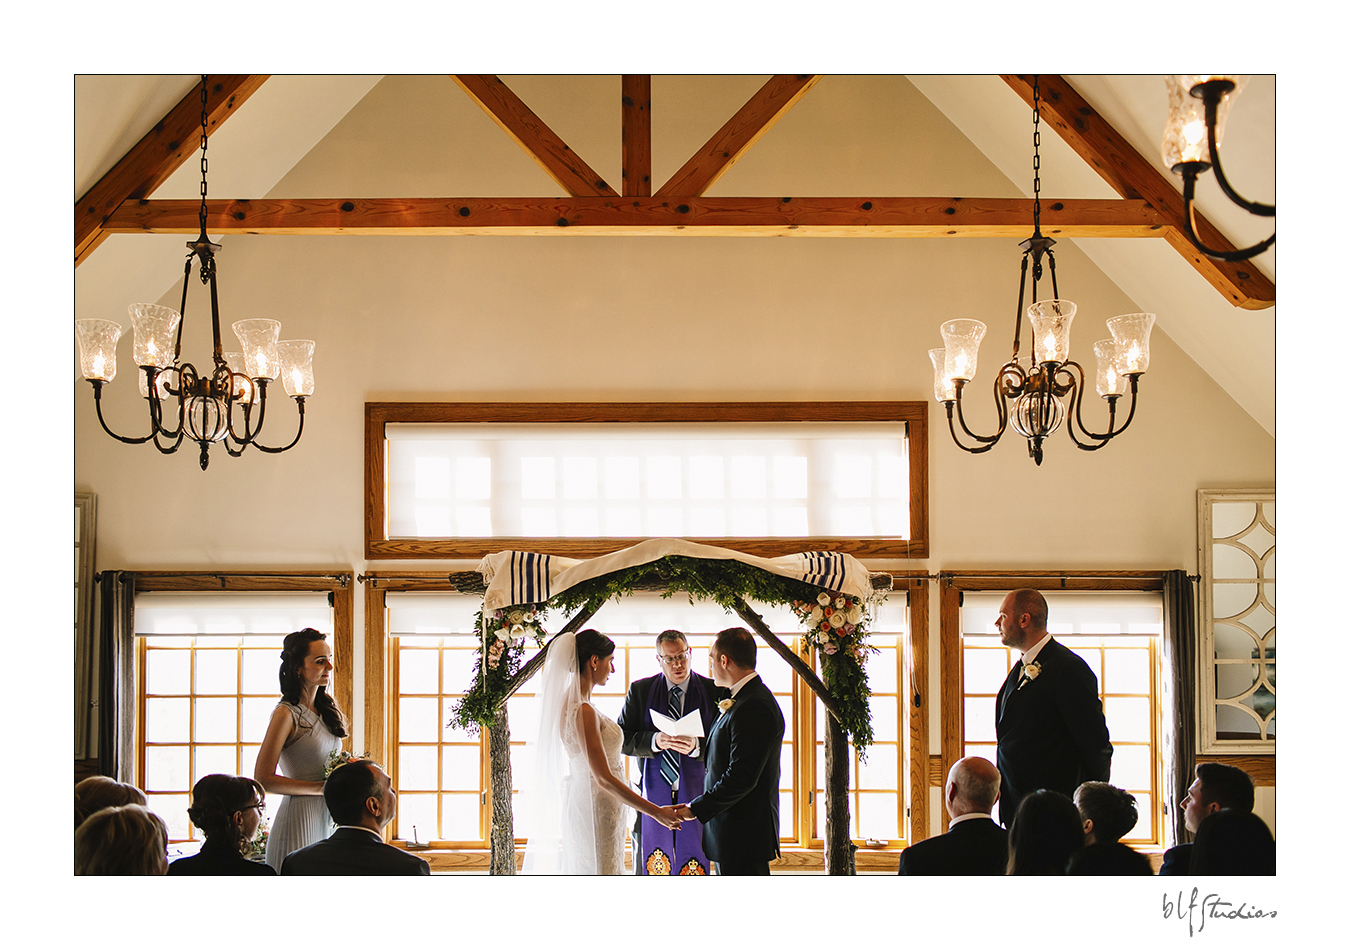 0013rimma-tyler--blfStudios-pineridgehollow-wedding.jpg